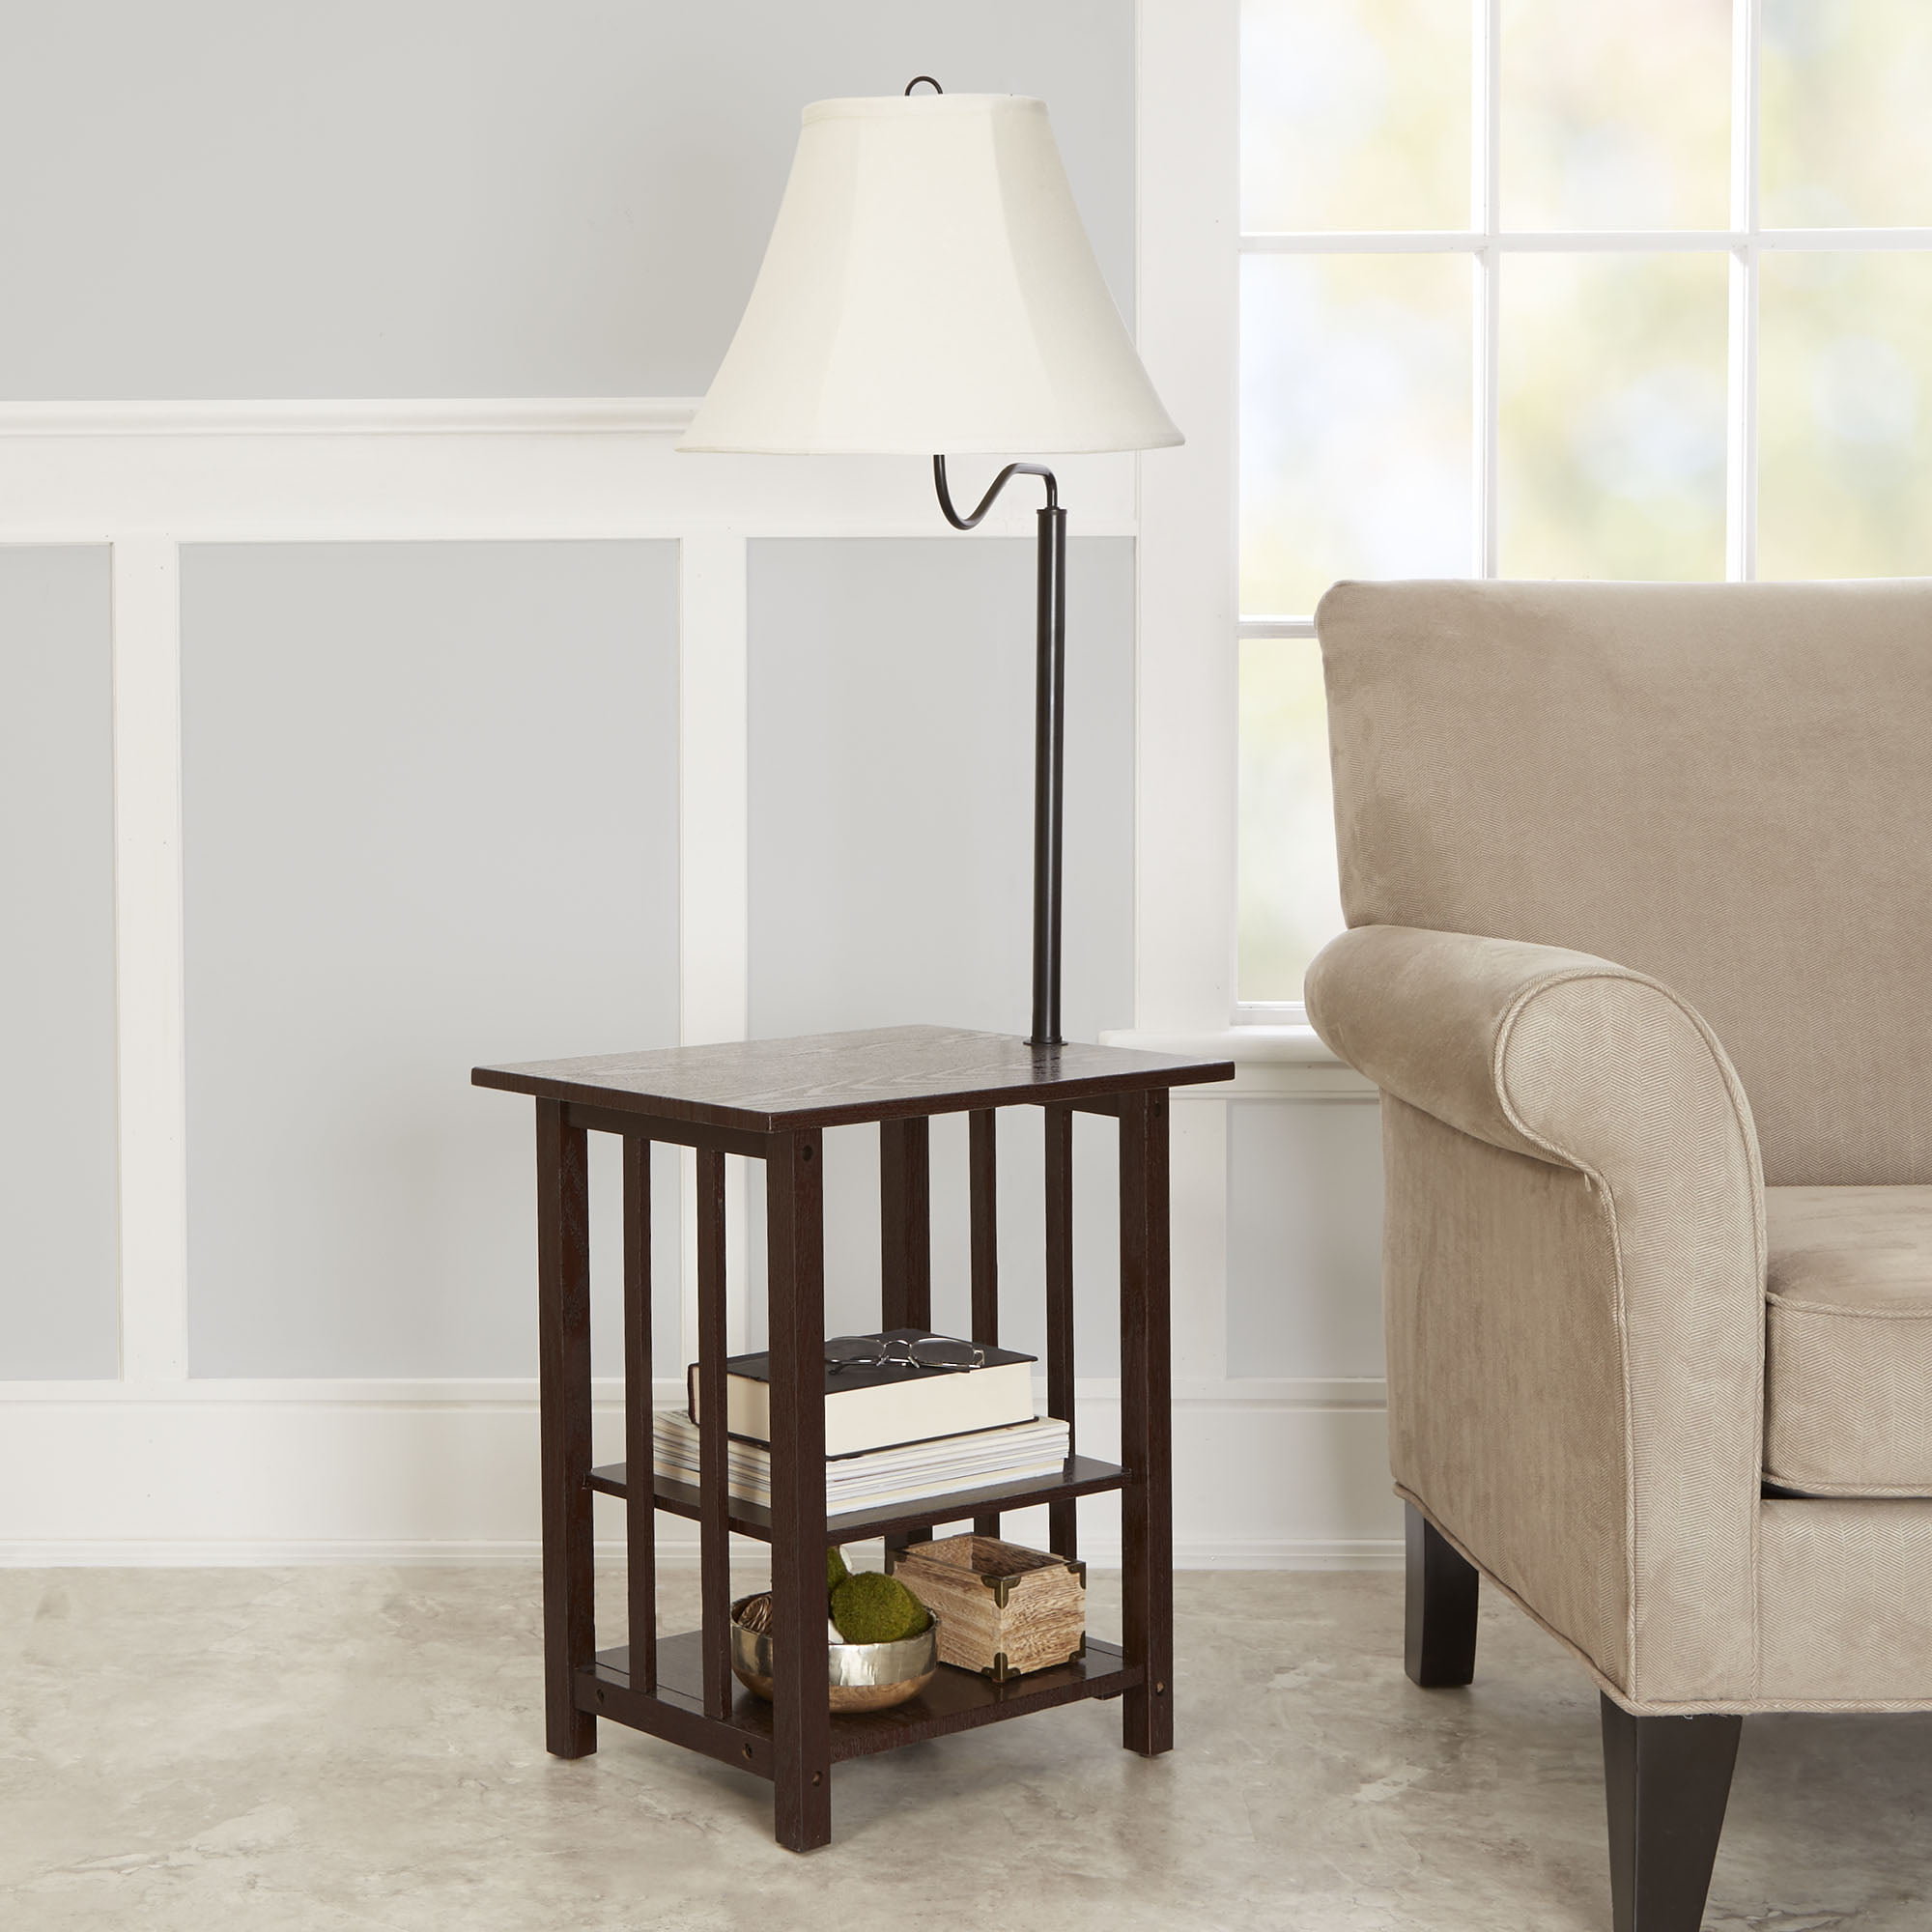 Better Homes Gardens 3 Rack End Table Floor Lamp Espresso Finish